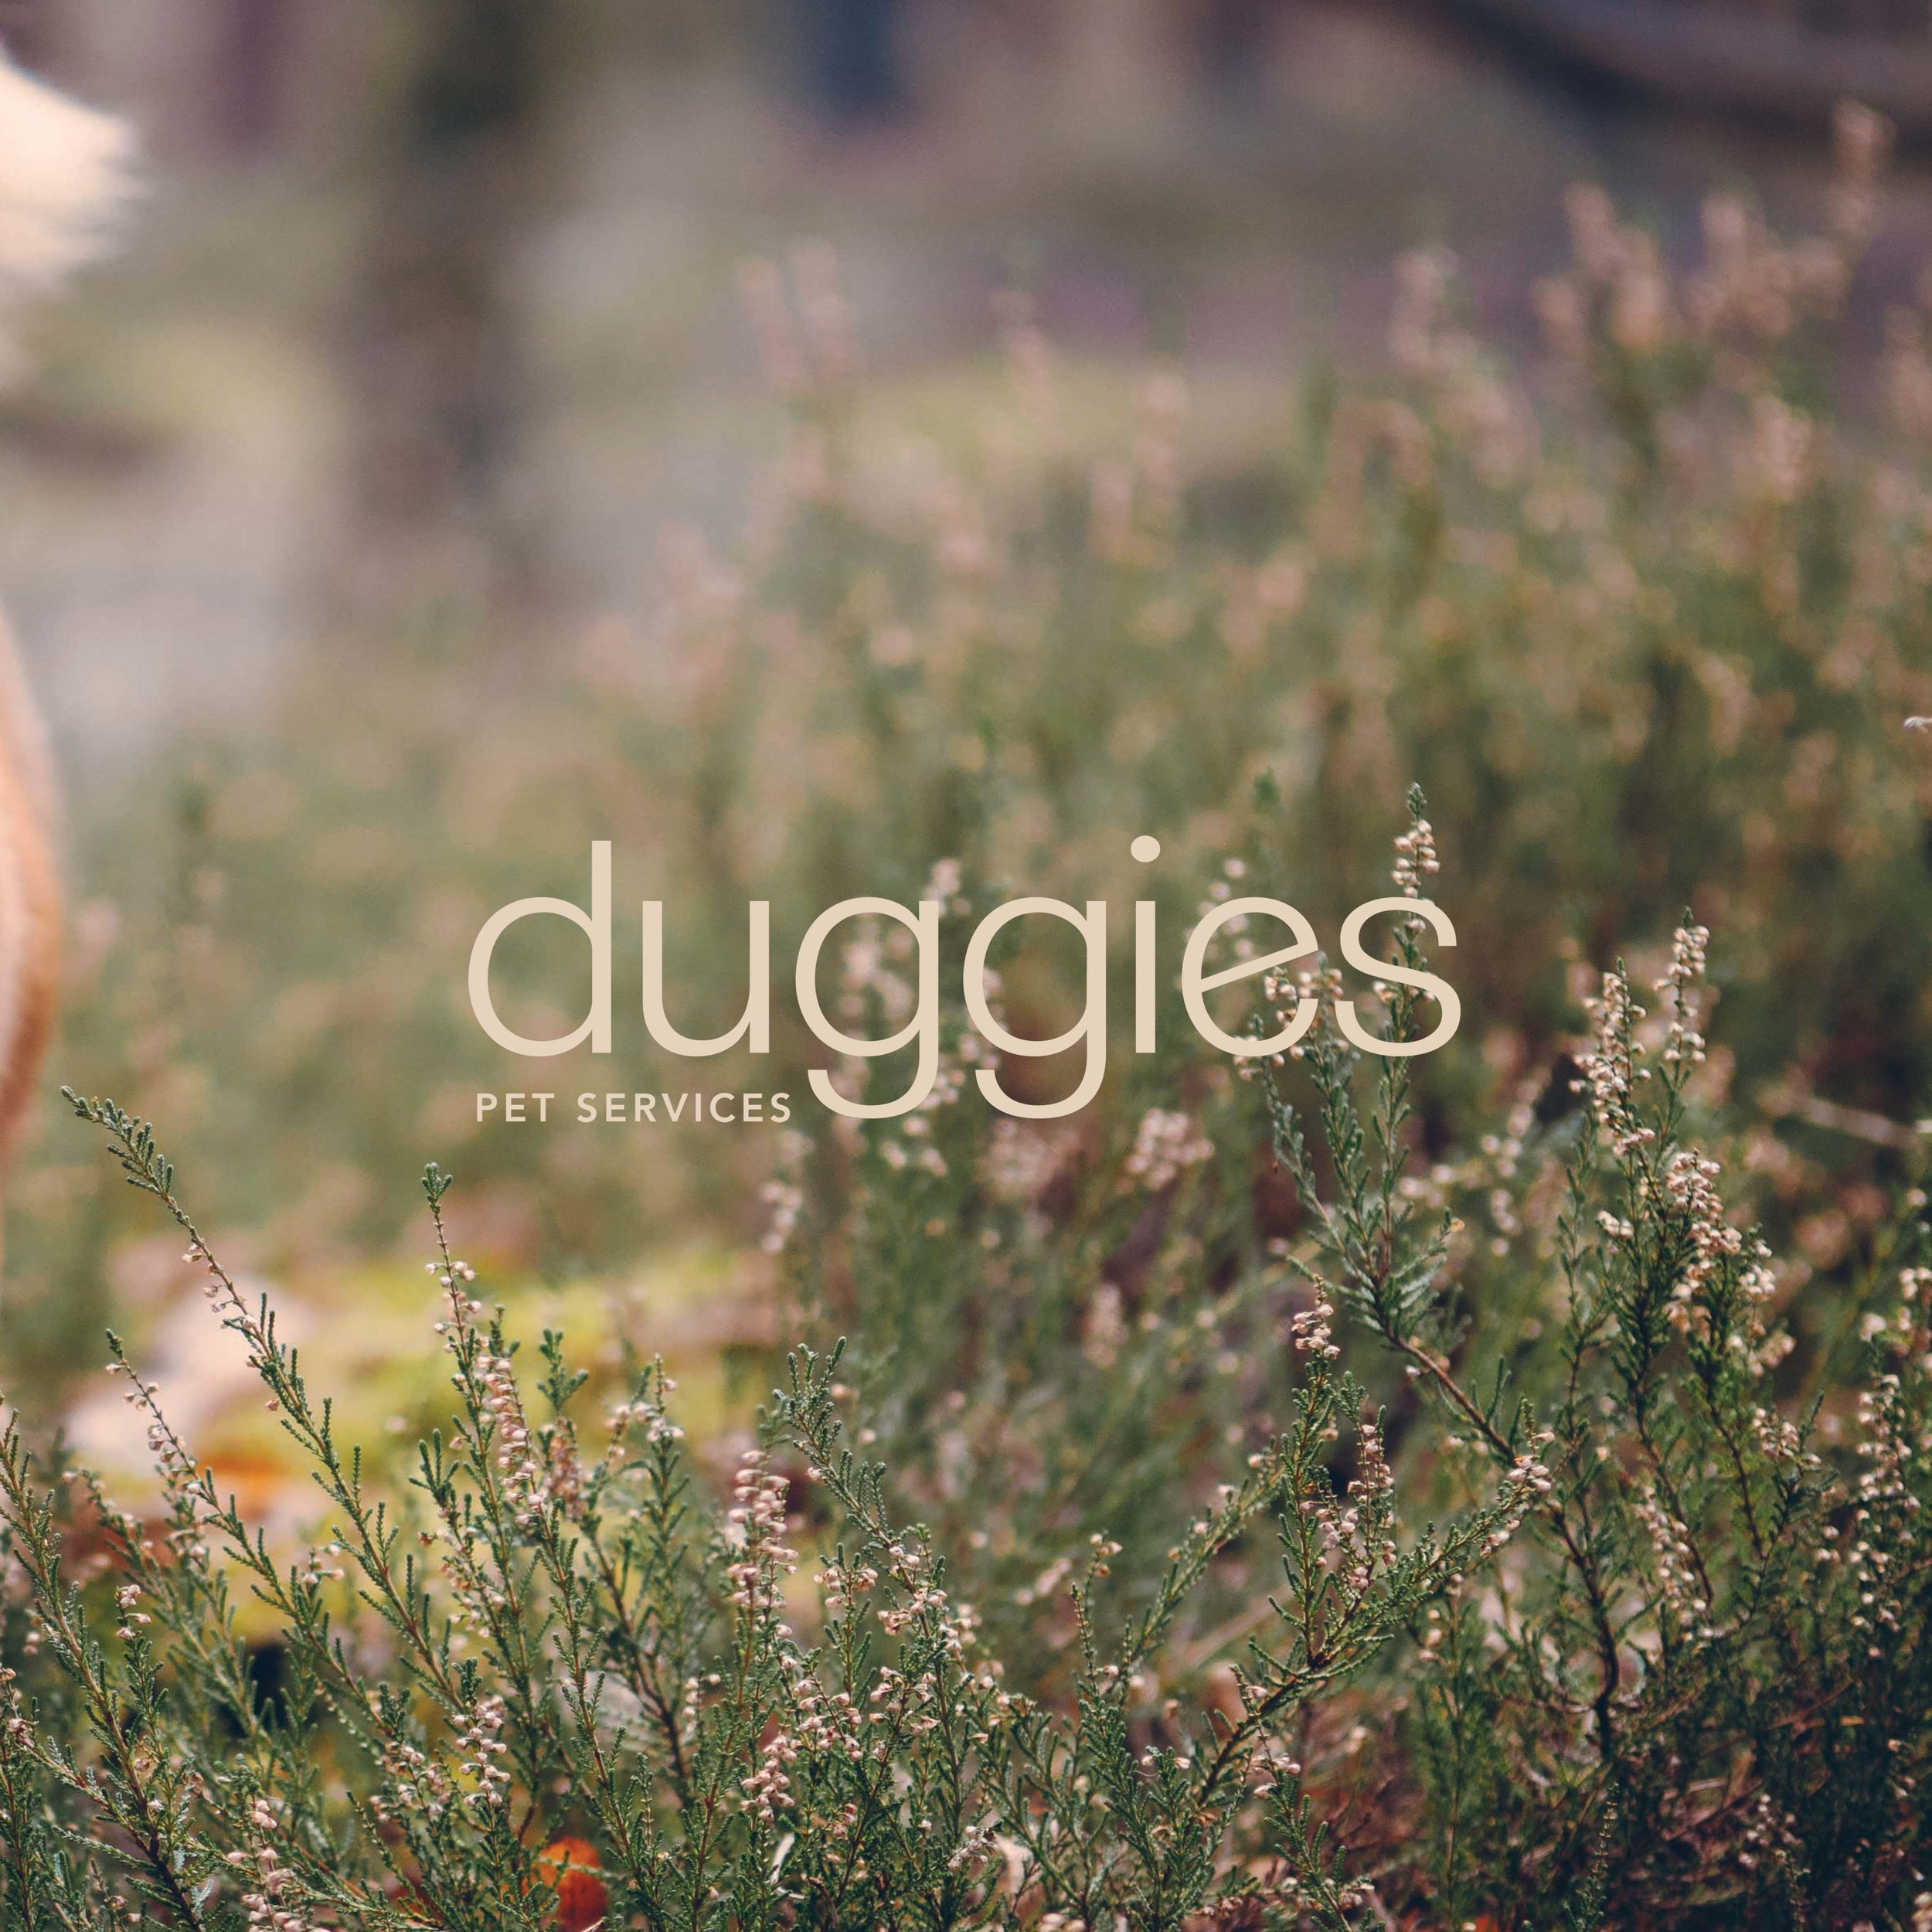 DUGGIES PET SERVICES